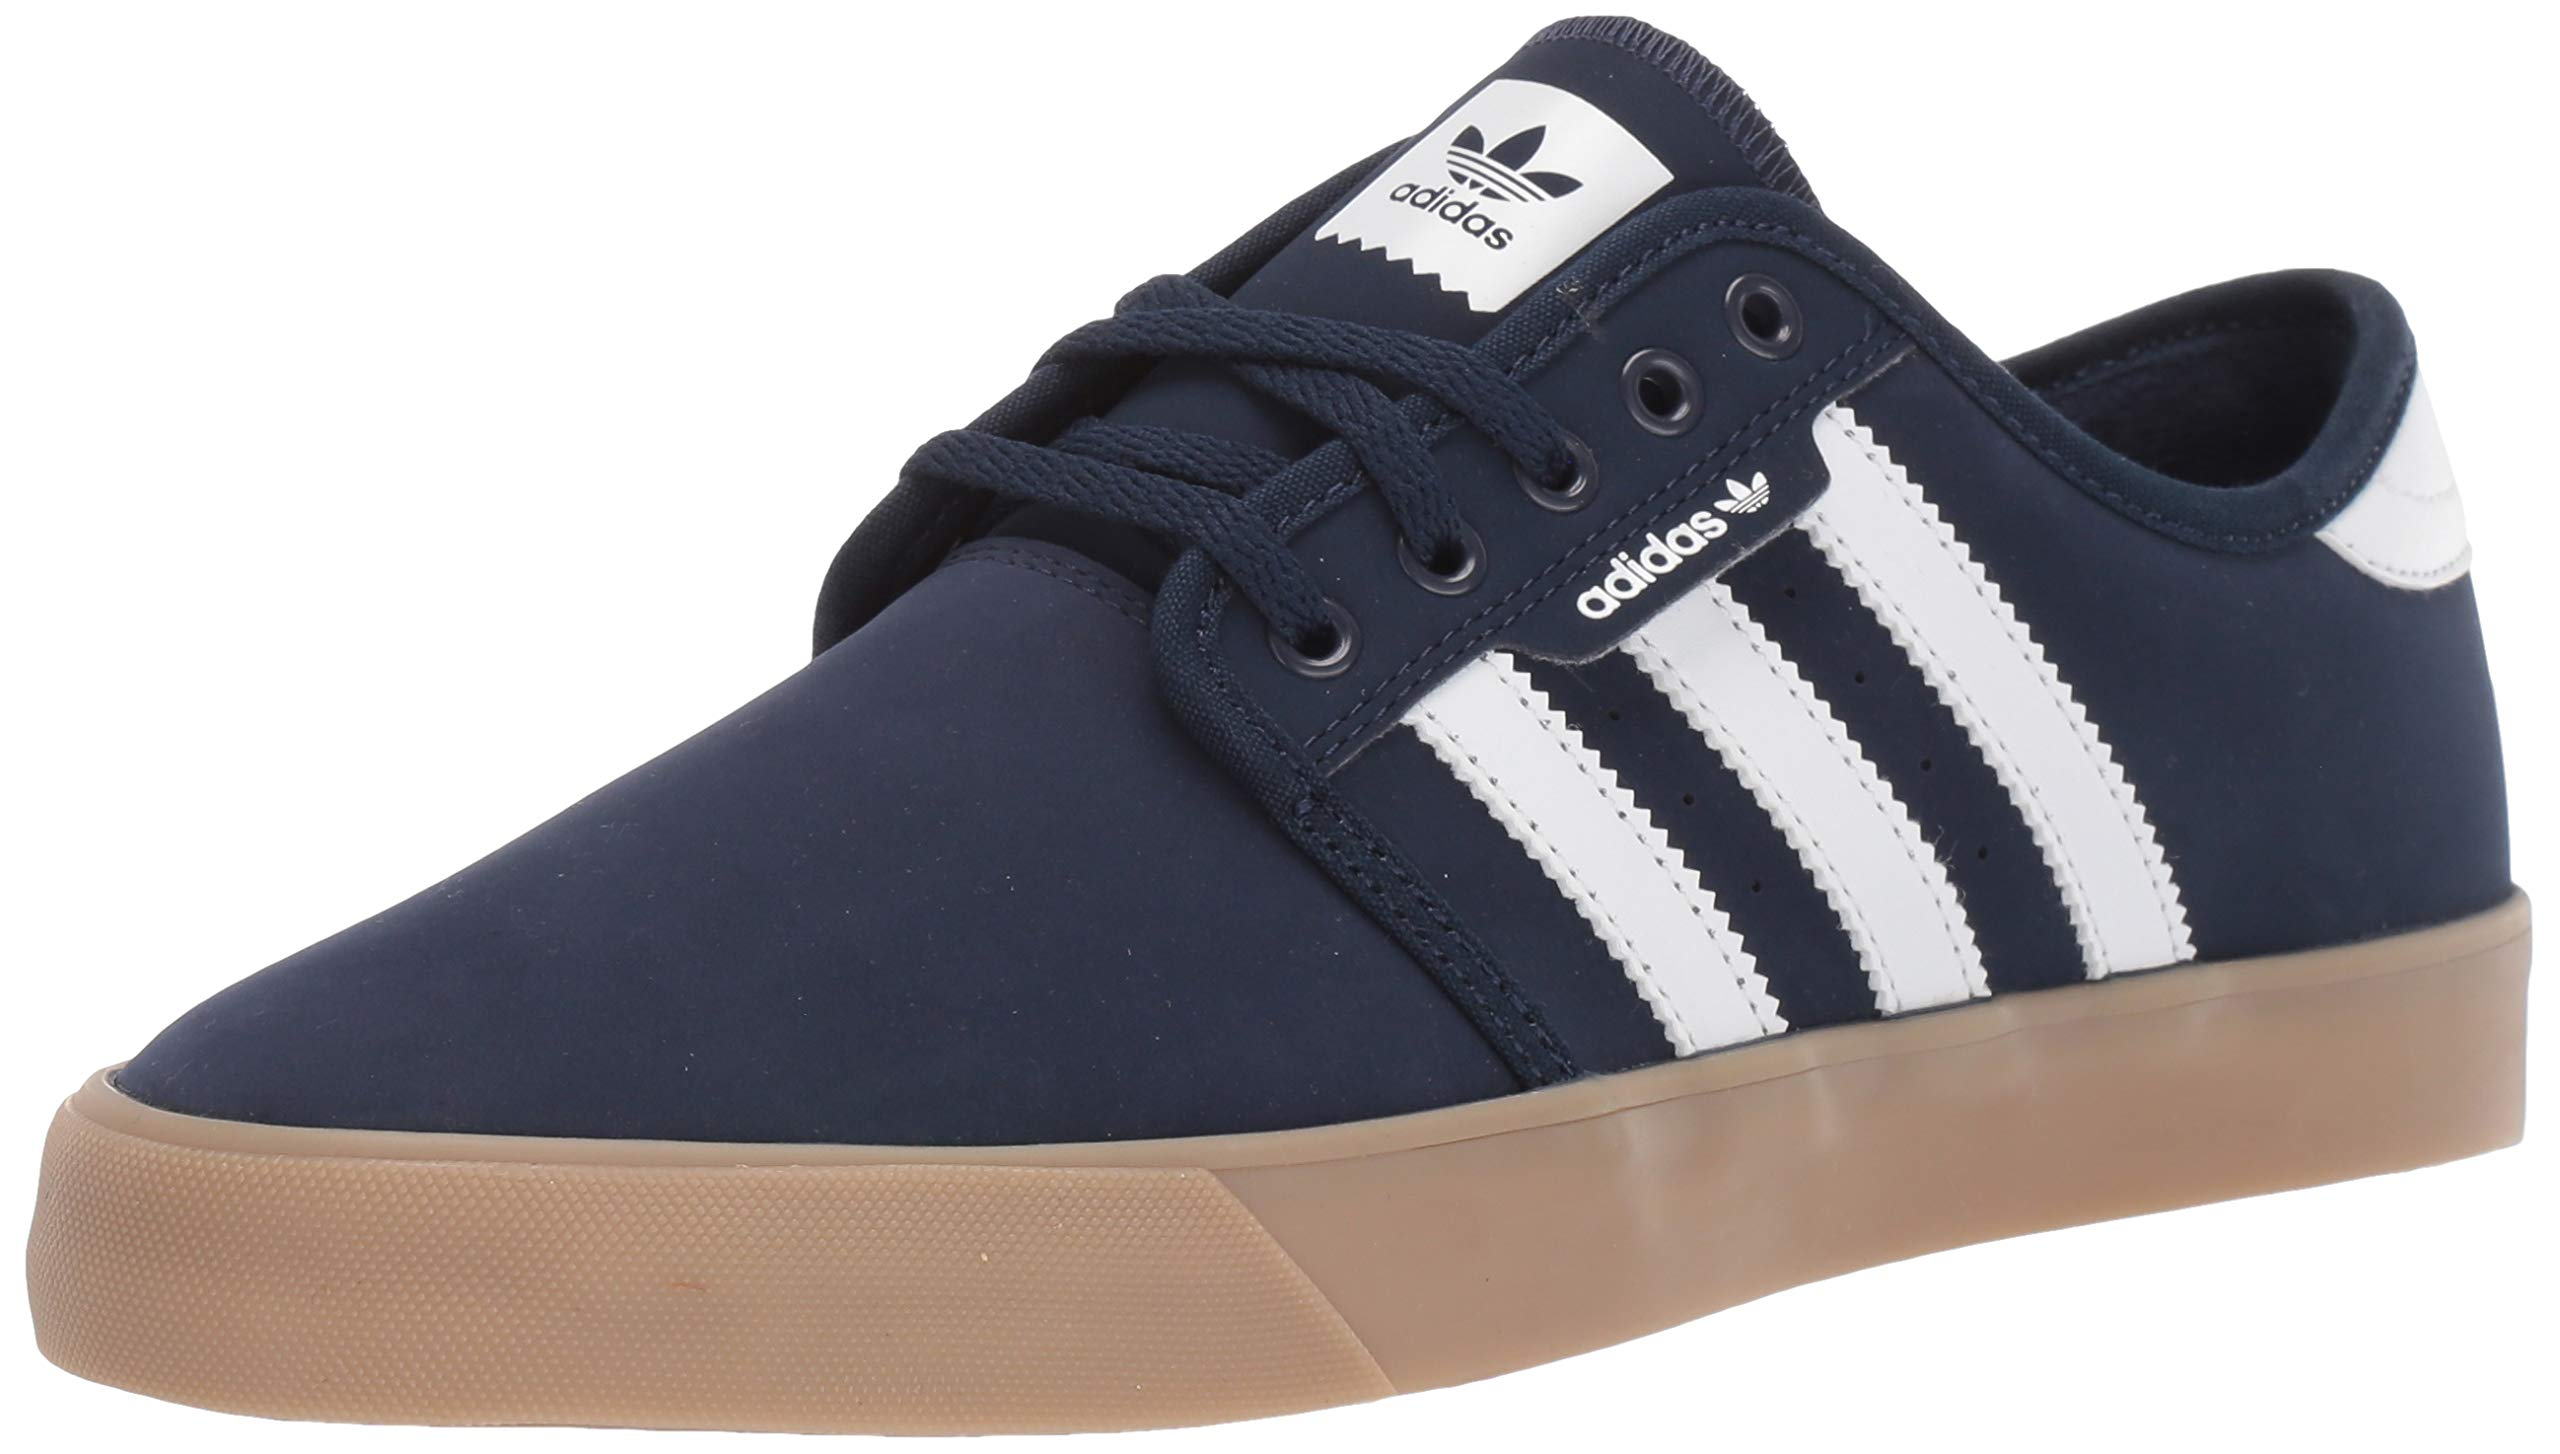 adidas Originals Men's Seely Sneaker